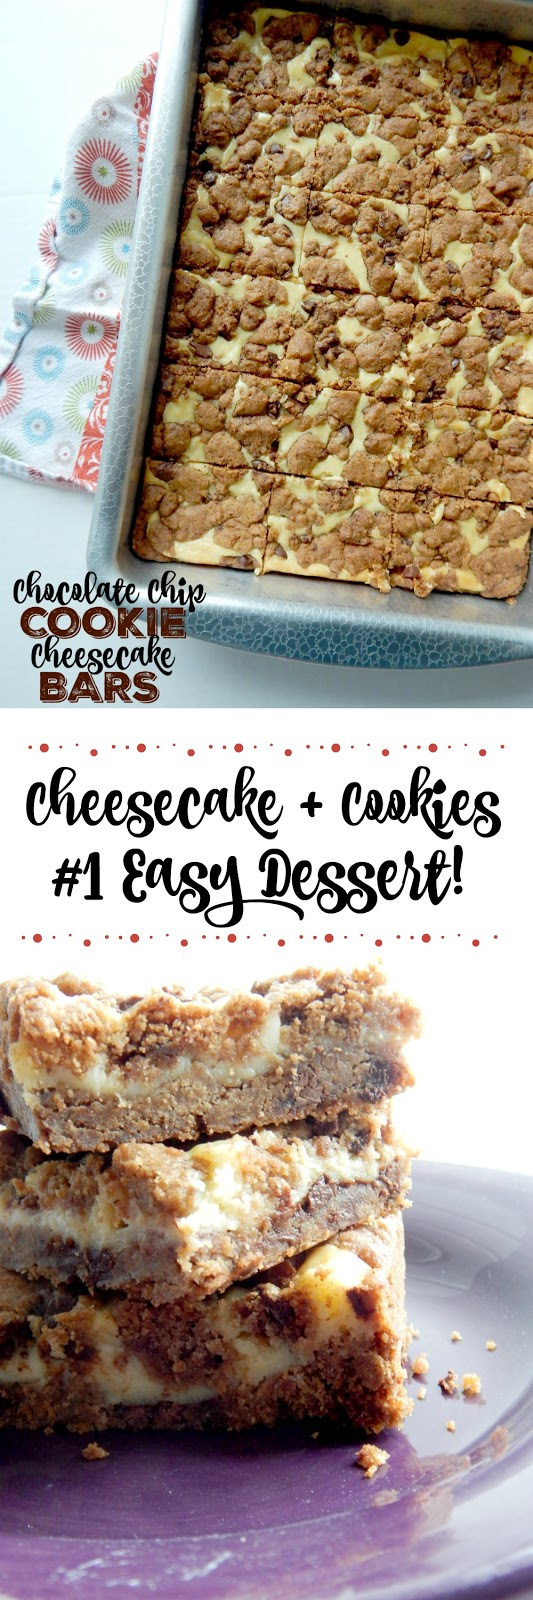 Chocolate Chip Cookie Cheesecake Bars...for those that love chocolate chip cookies AND love cheesecake!  Crispy on the cookie edges with a creamy middle cheesecake layer.  The perfect bar dessert! (sweetandsavoryfood.com)